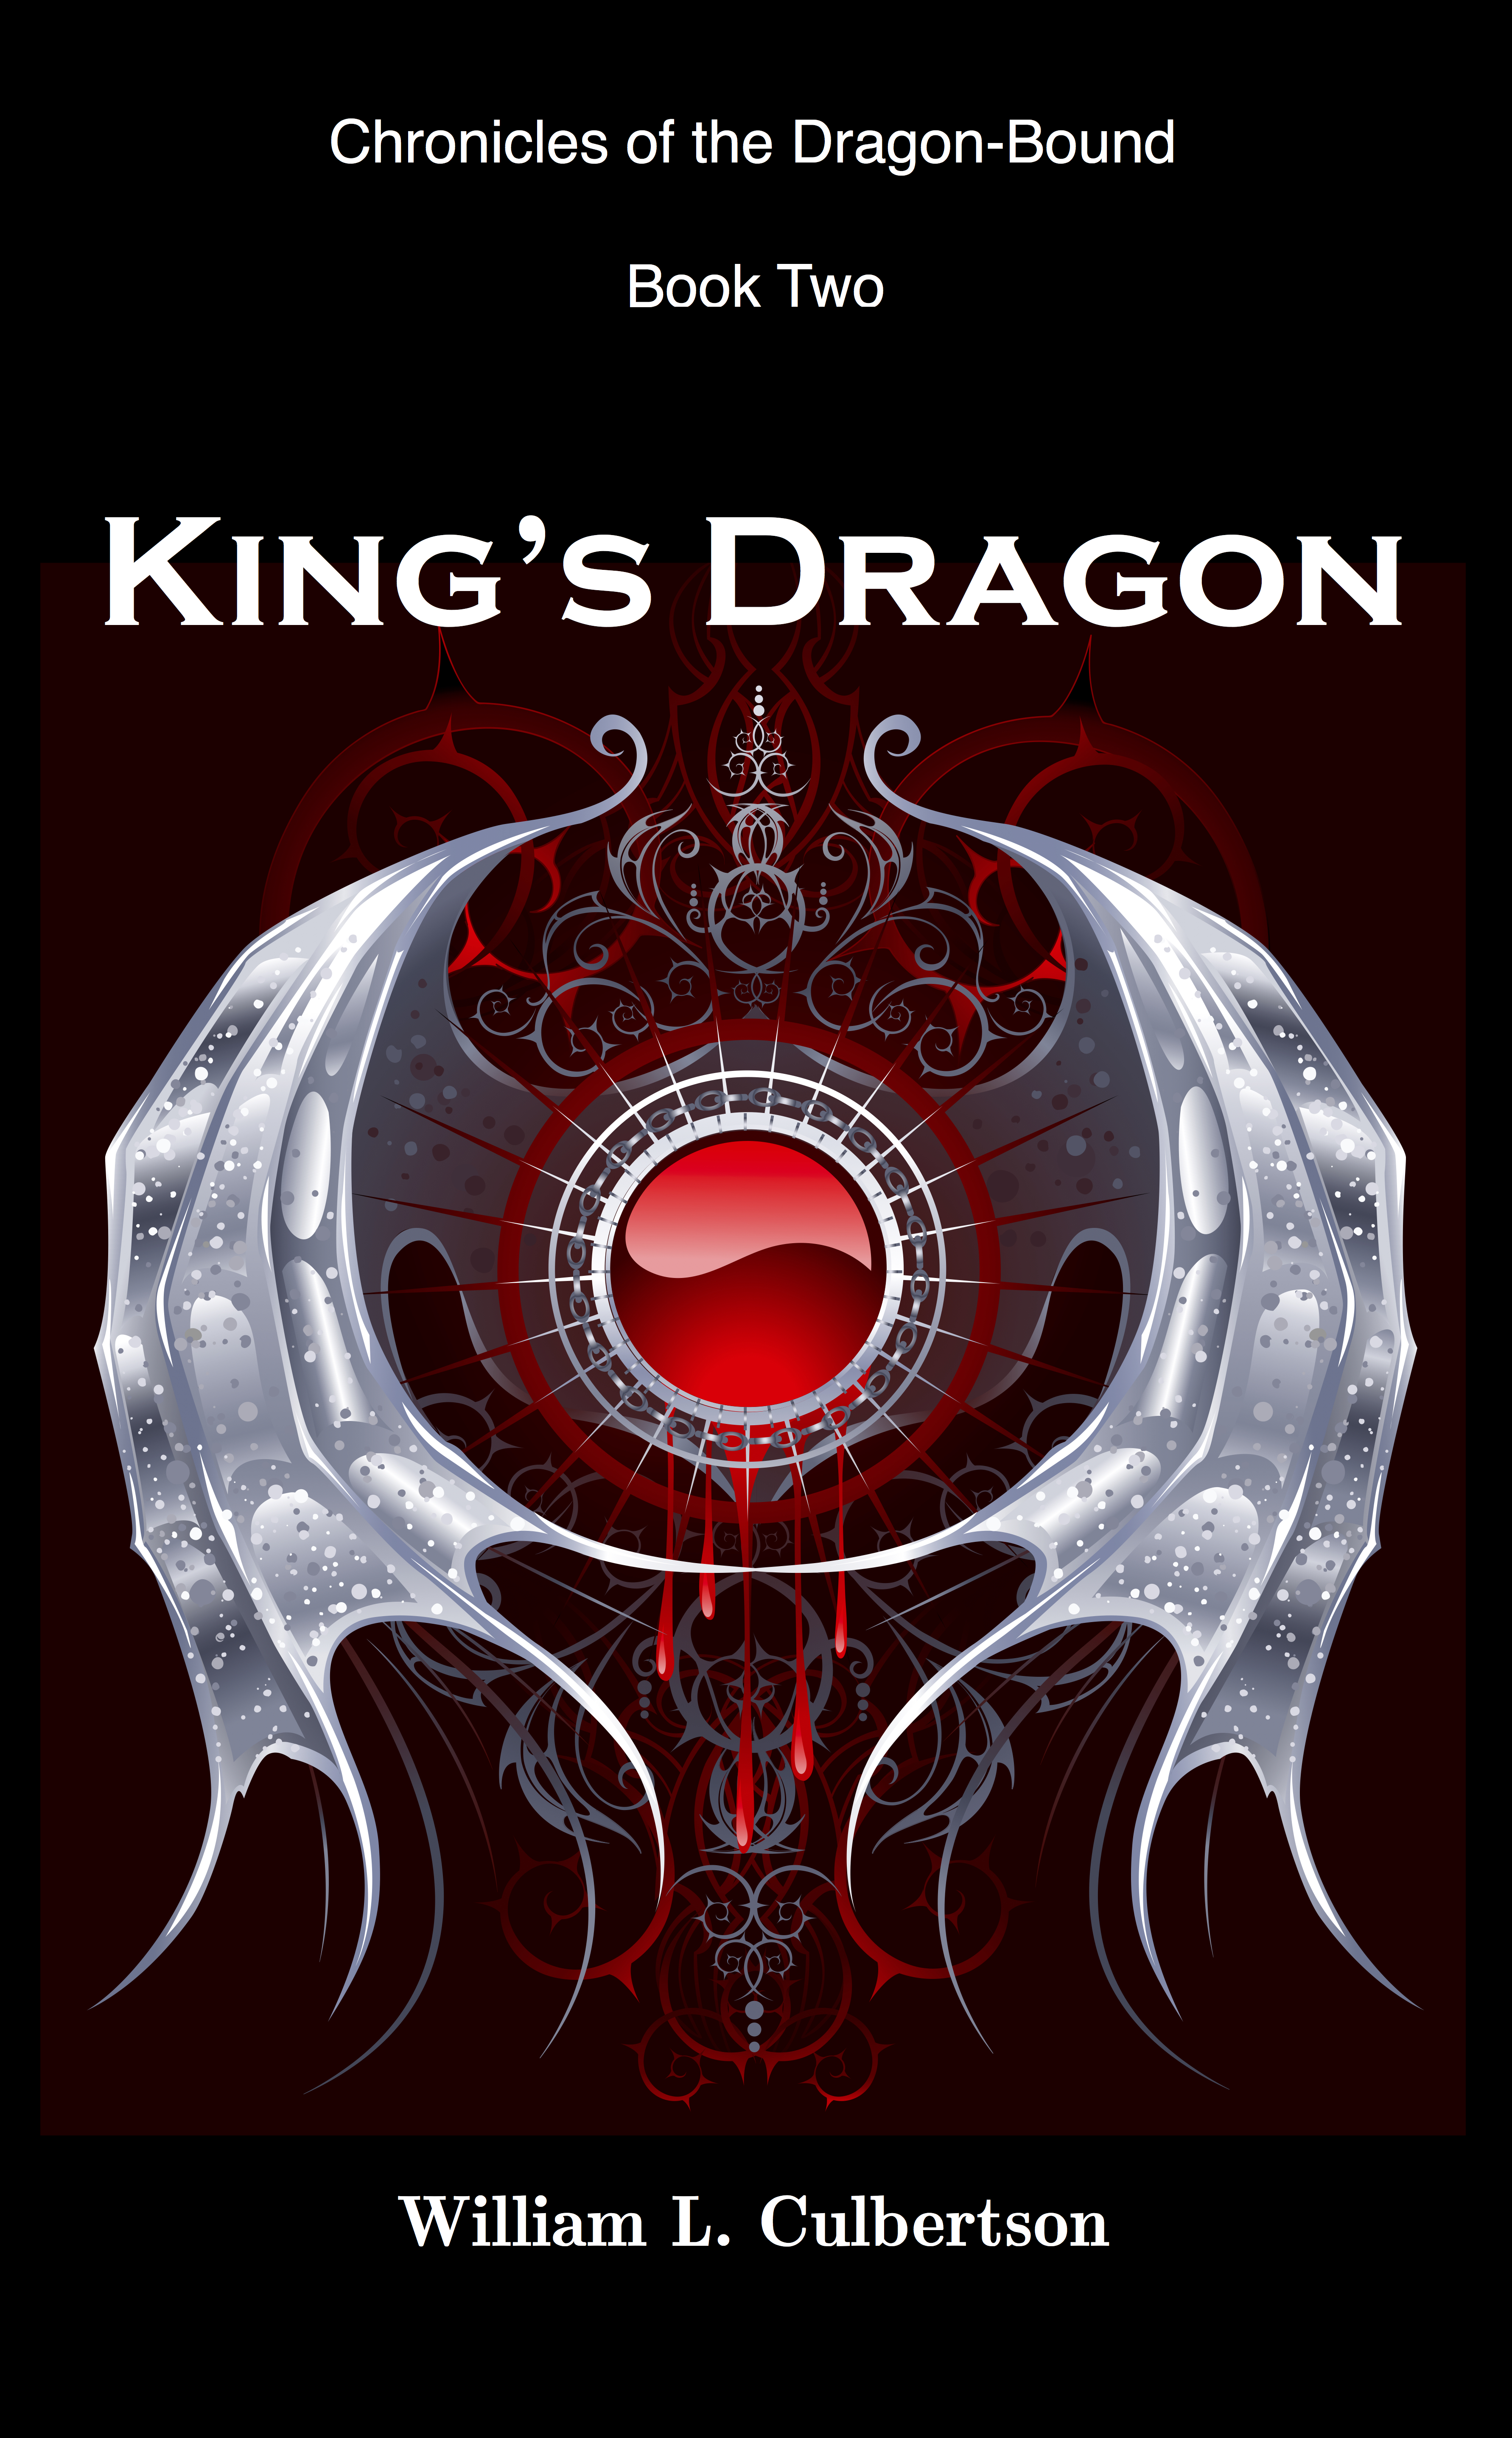 King's Dragon: Chronicles of the Dragon-Bound, Book 2, an Ebook by William  L Culbertson